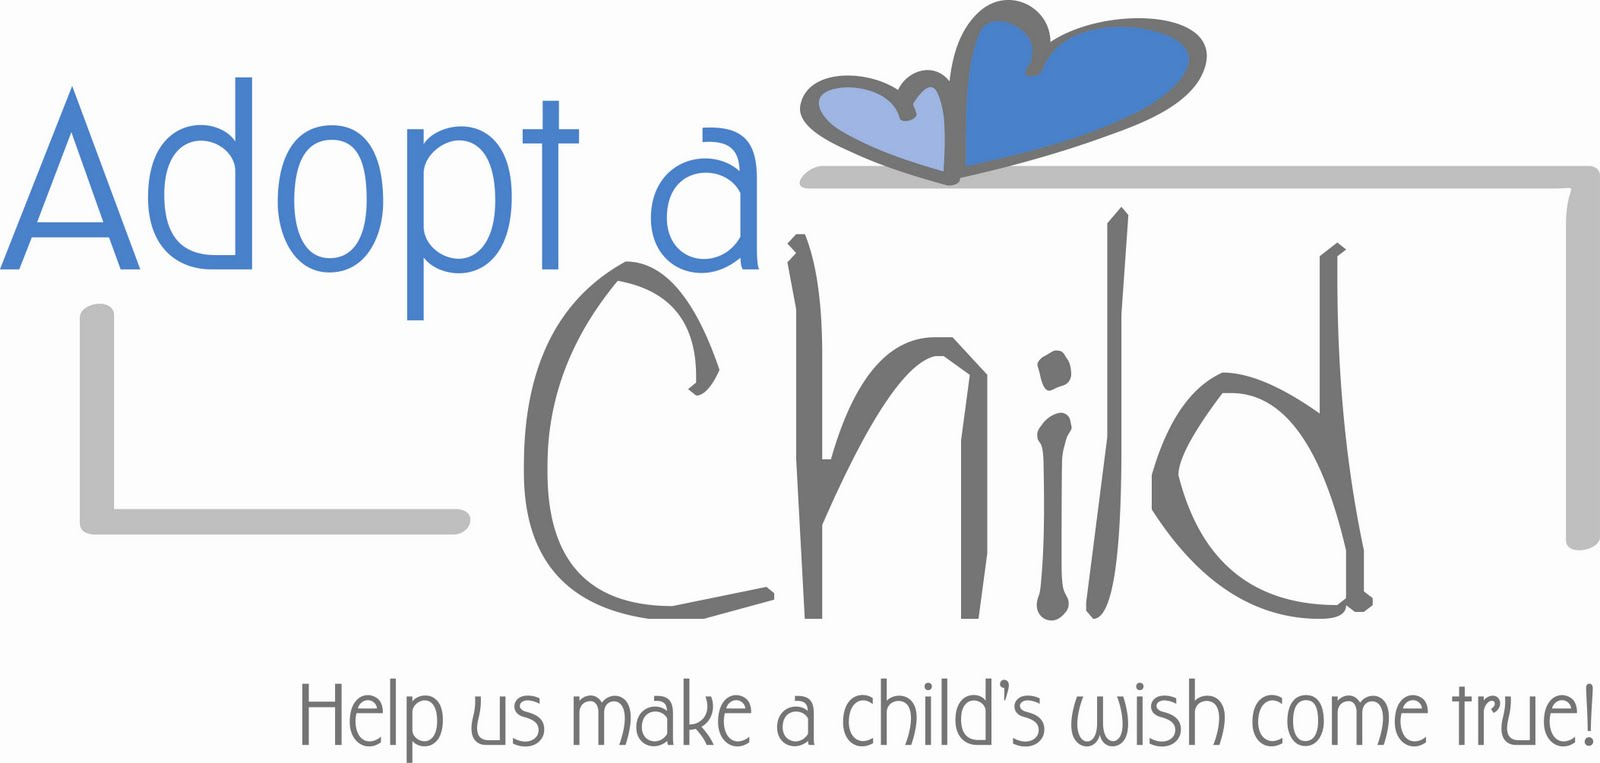 photoaltan36: adopt a child for christmas